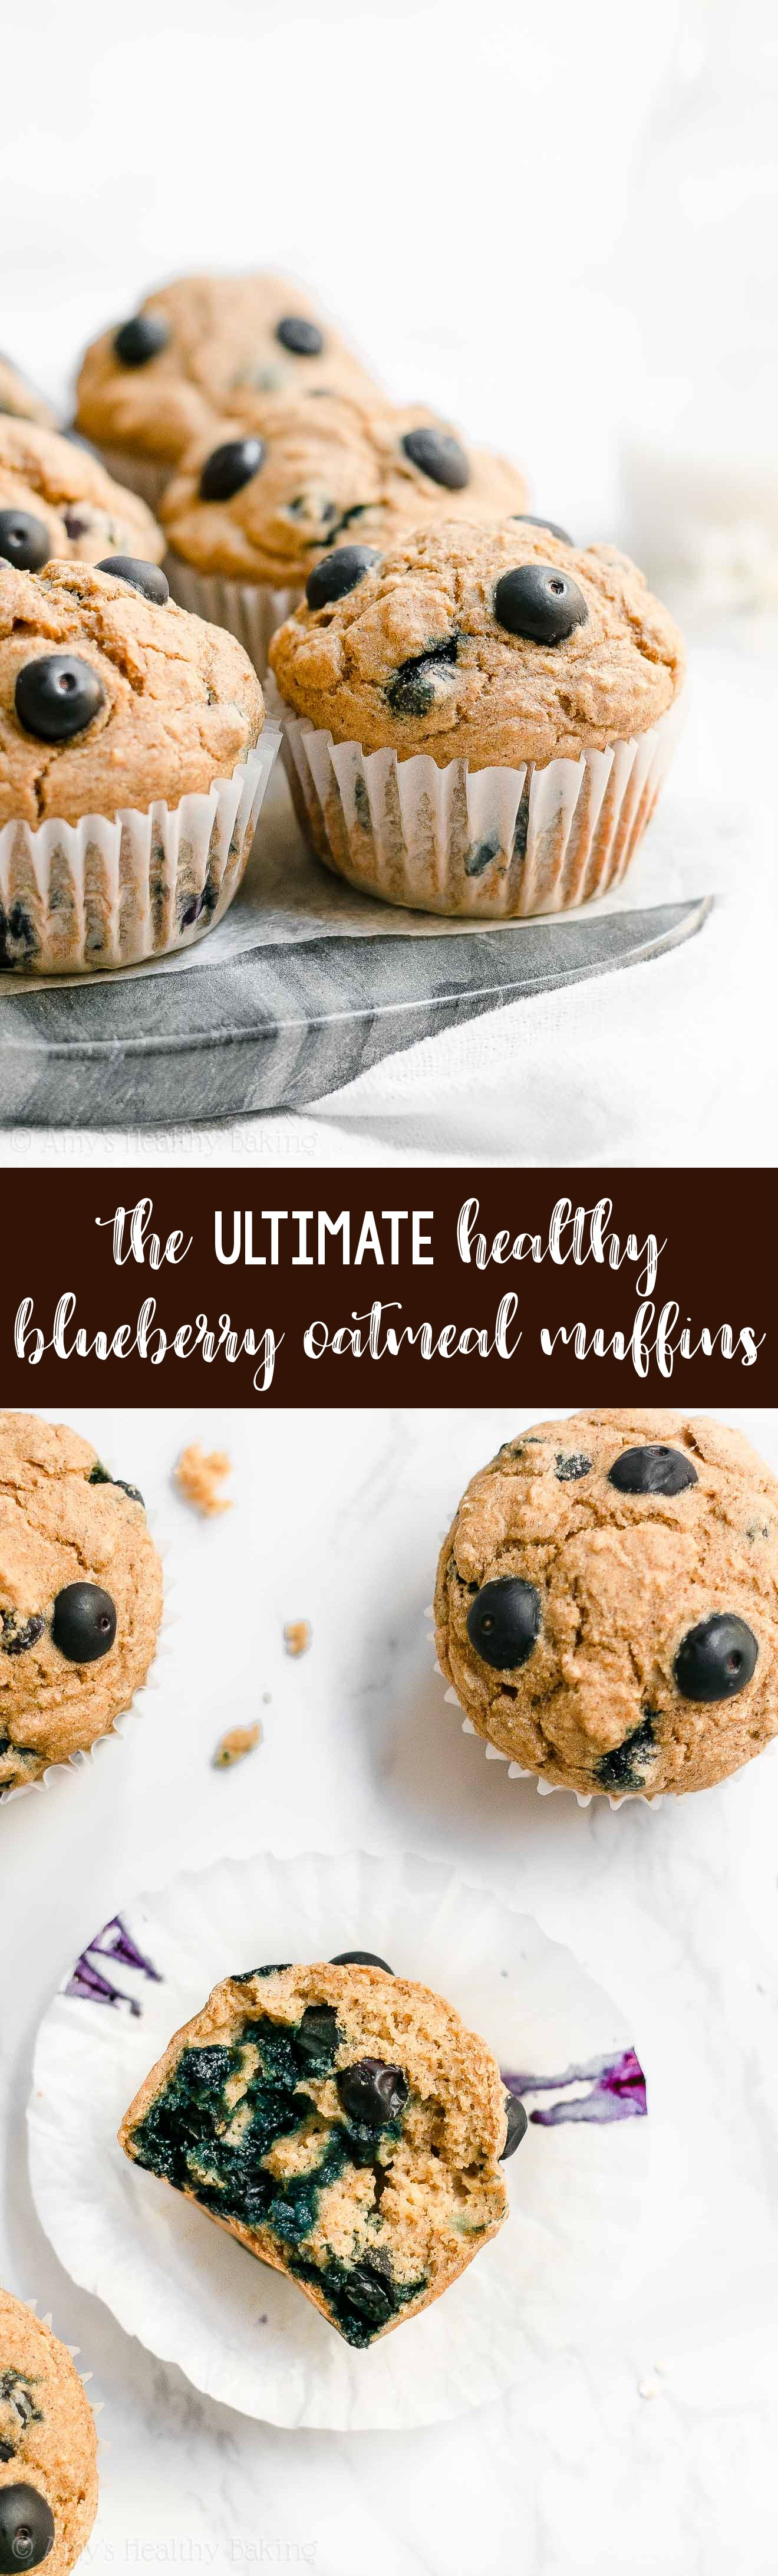 ULTIMATE Healthy Clean Eating Best Blueberry Oatmeal Muffins